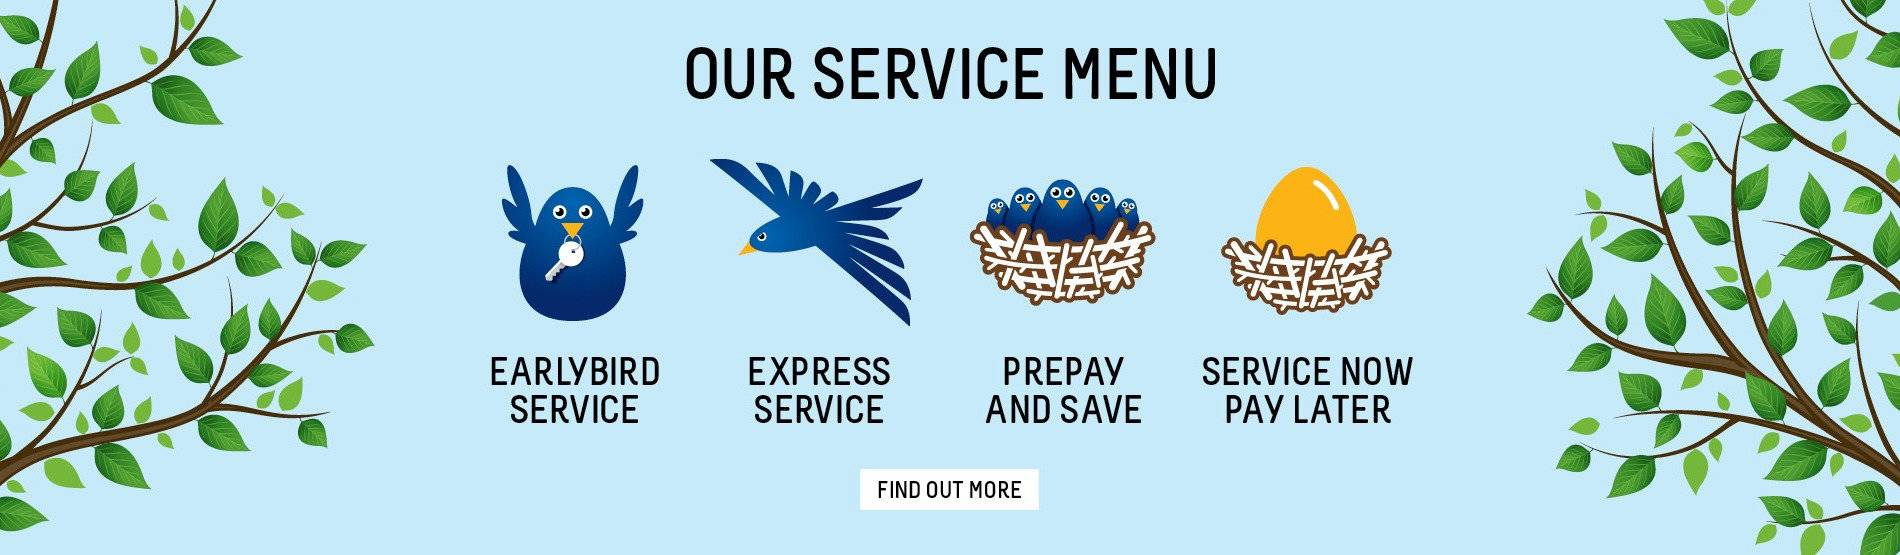 City Nissan Service Menu